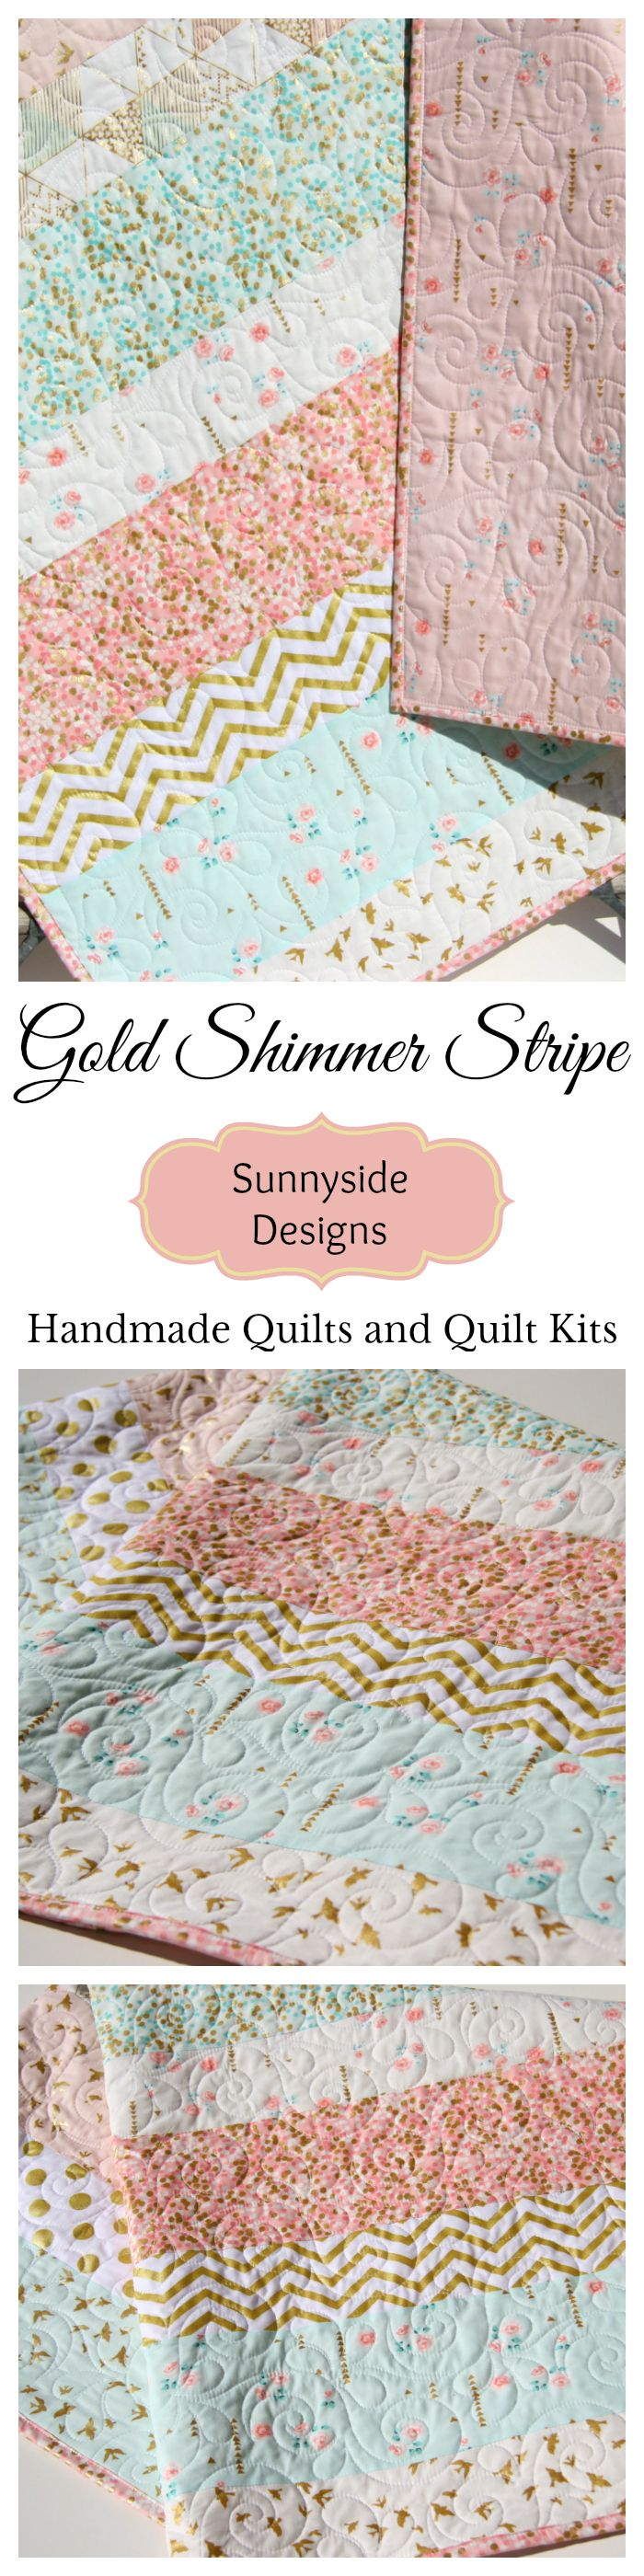 Gold Baby Nursery Quilt, Handmade Baby Quilt for Sale, Pink Coral Mint Green Blue Gold Metallic Glitz Brambleberry, Baby Shower Gift Heirloom Arrows Roses Flowers, Baby Quilt Kit Toddler Quilt by Sunnyside Designs